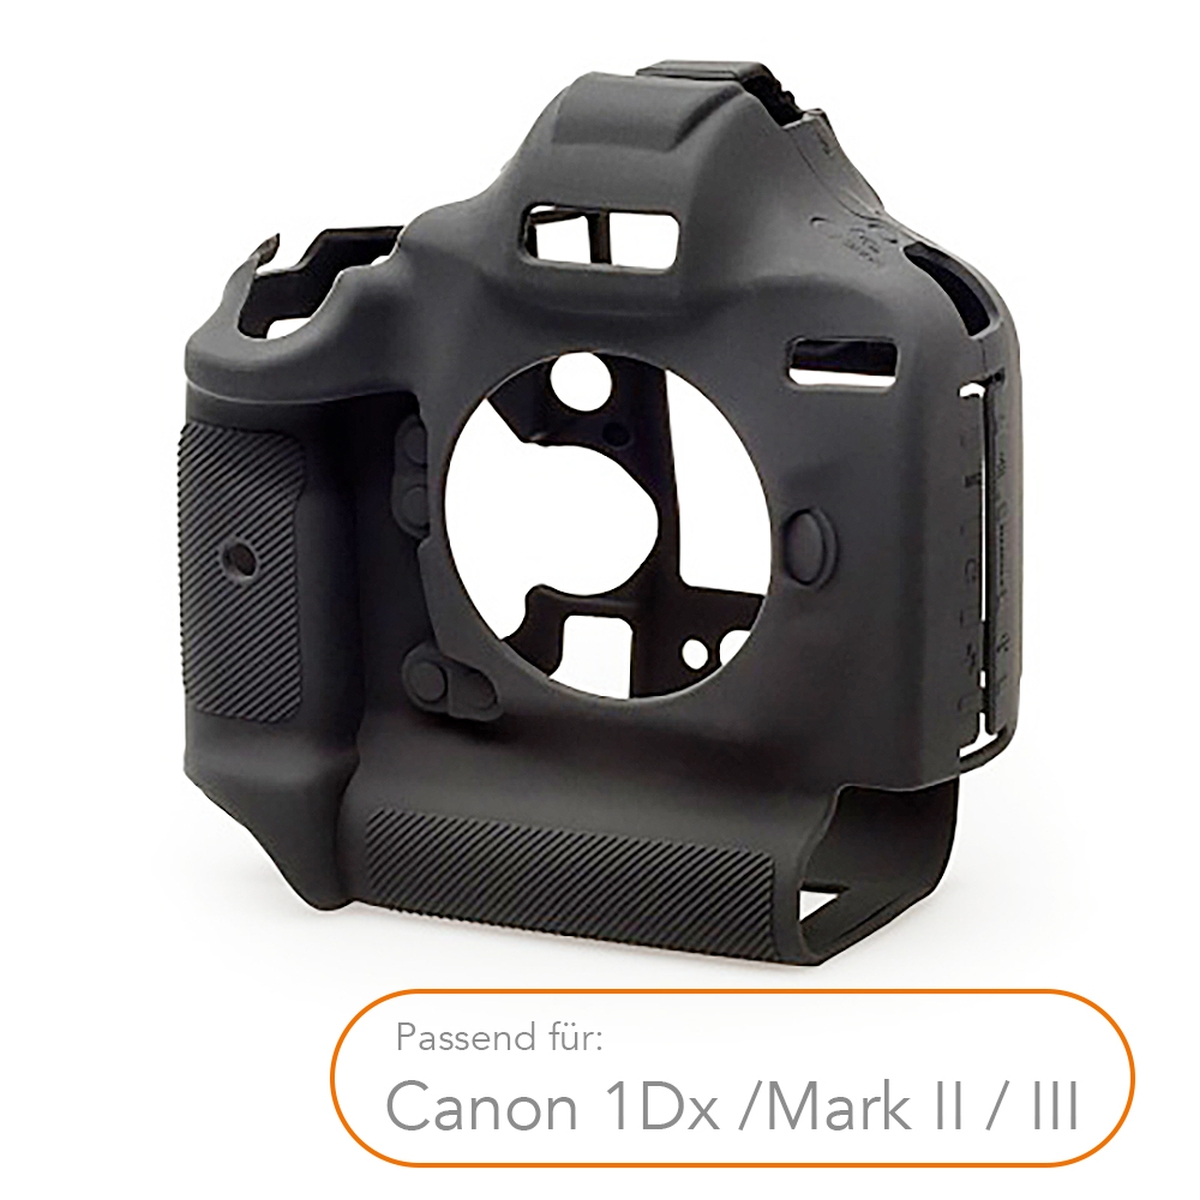 Walimex pro easyCover for Canon 1Dx/ Mark II / III